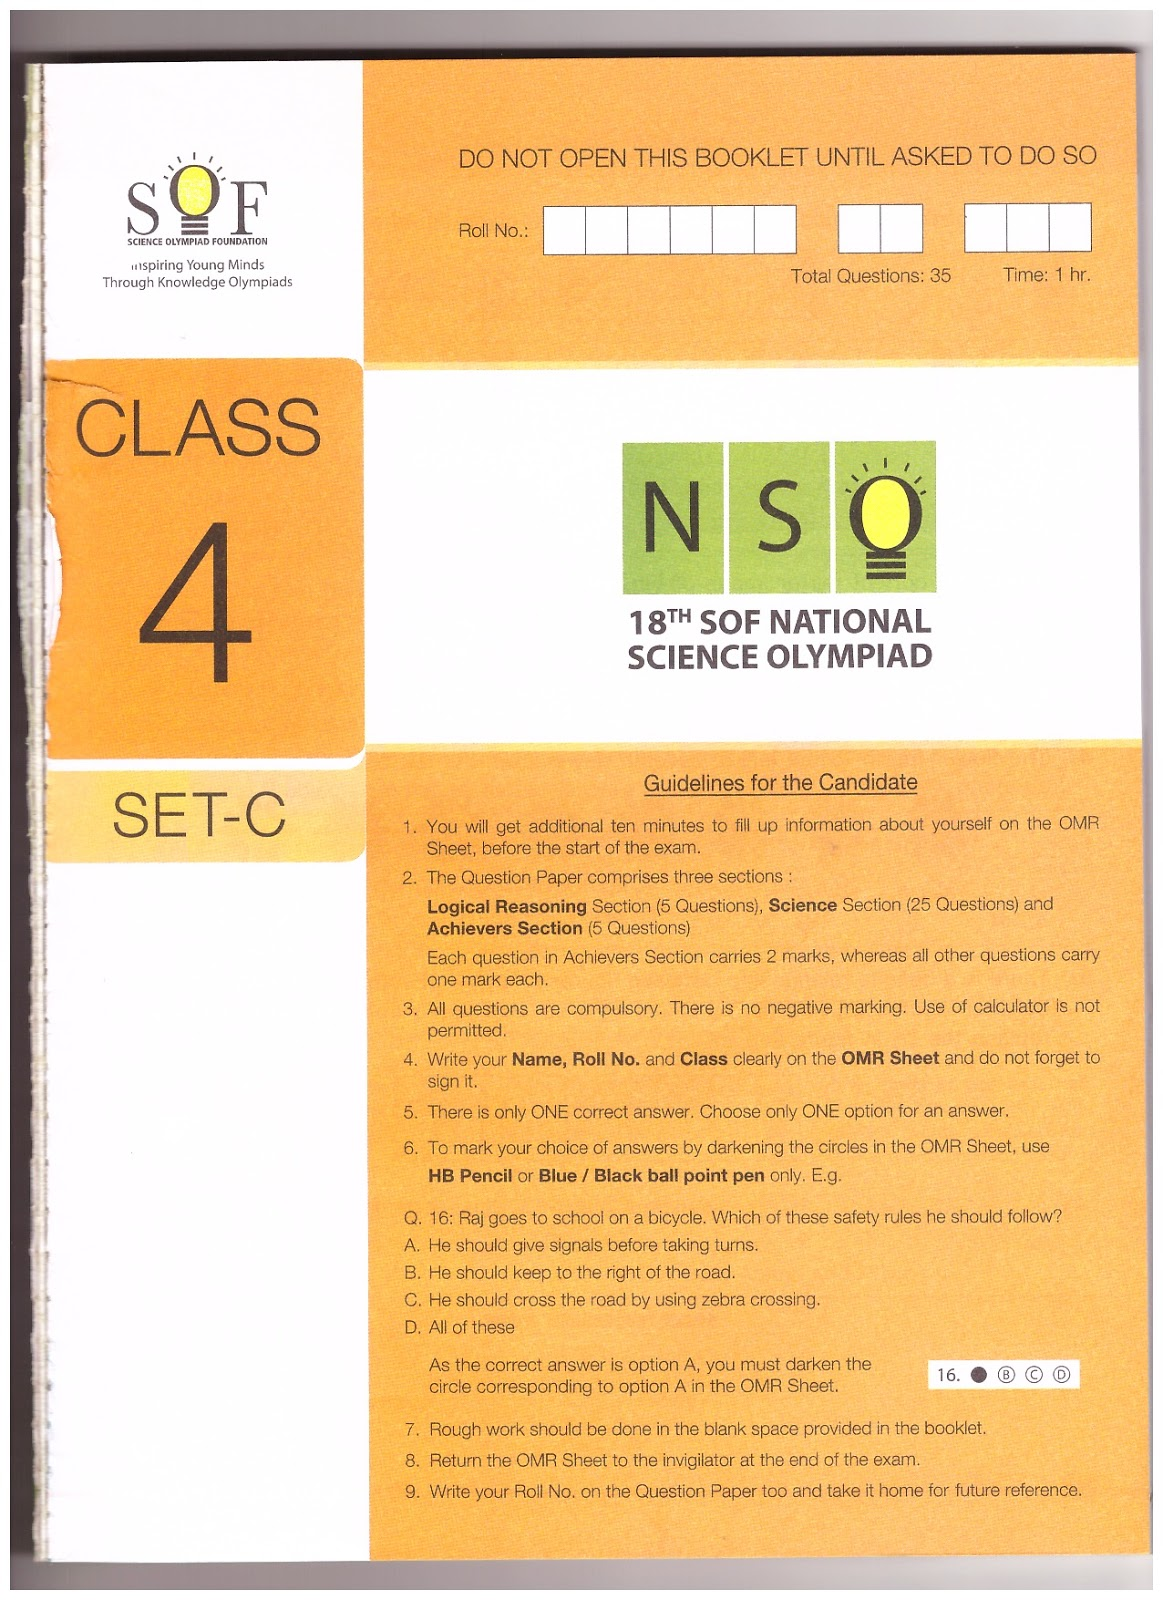 national science olympiad previous question papers Nso previous year papers with answers national science olympiad (nso) previous year / old question papers with answers / solutions are 2019 nso previous year question papers with answers 2018.